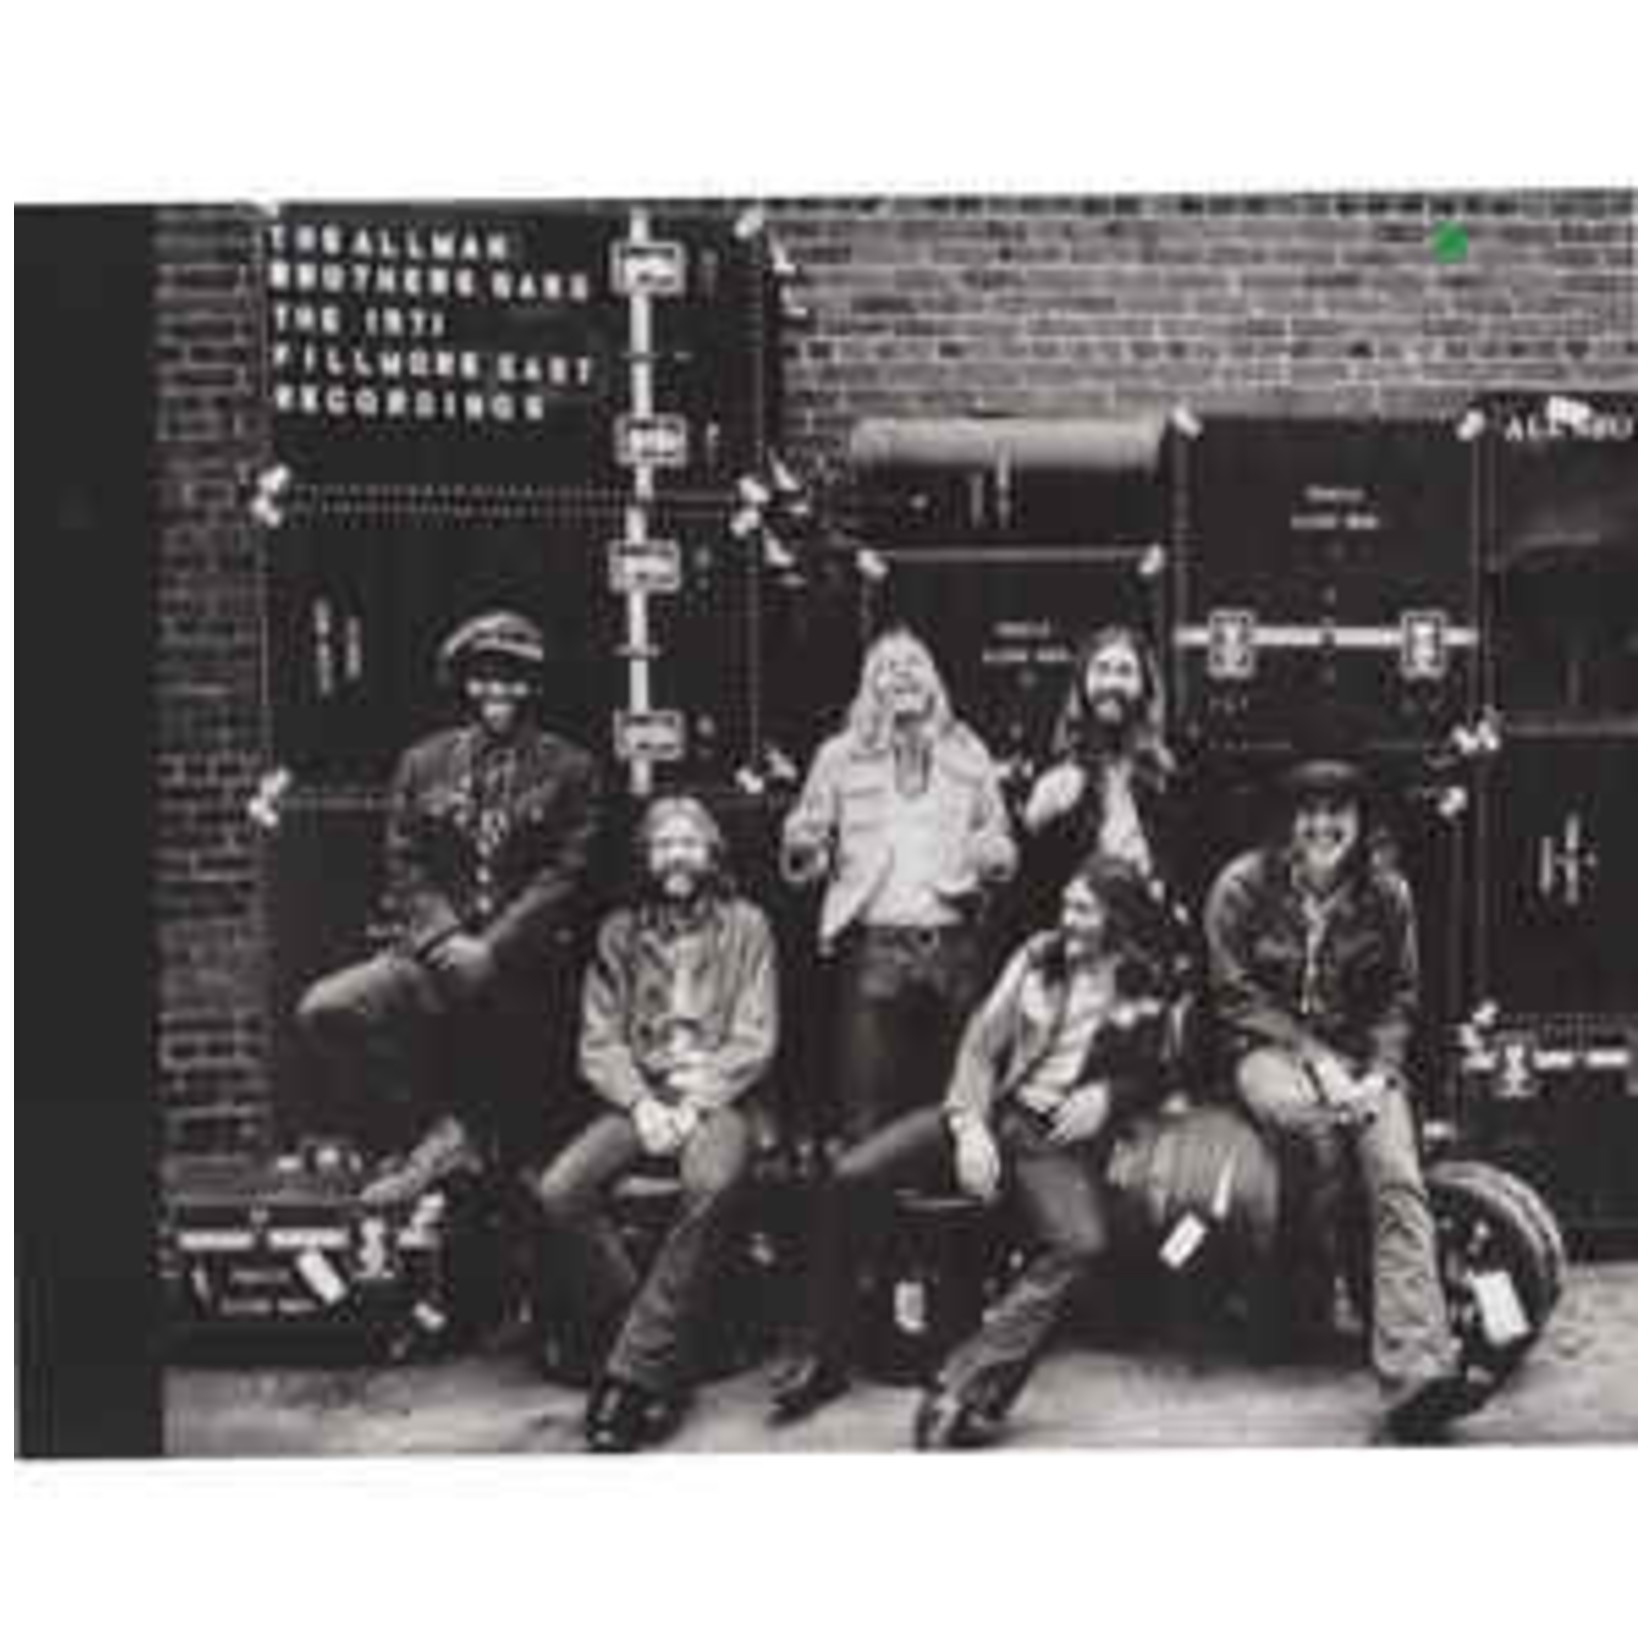 Compact Disc The Allman Brothers Band - The Complete 1971 Fillmore  East Records (6 CD Box)